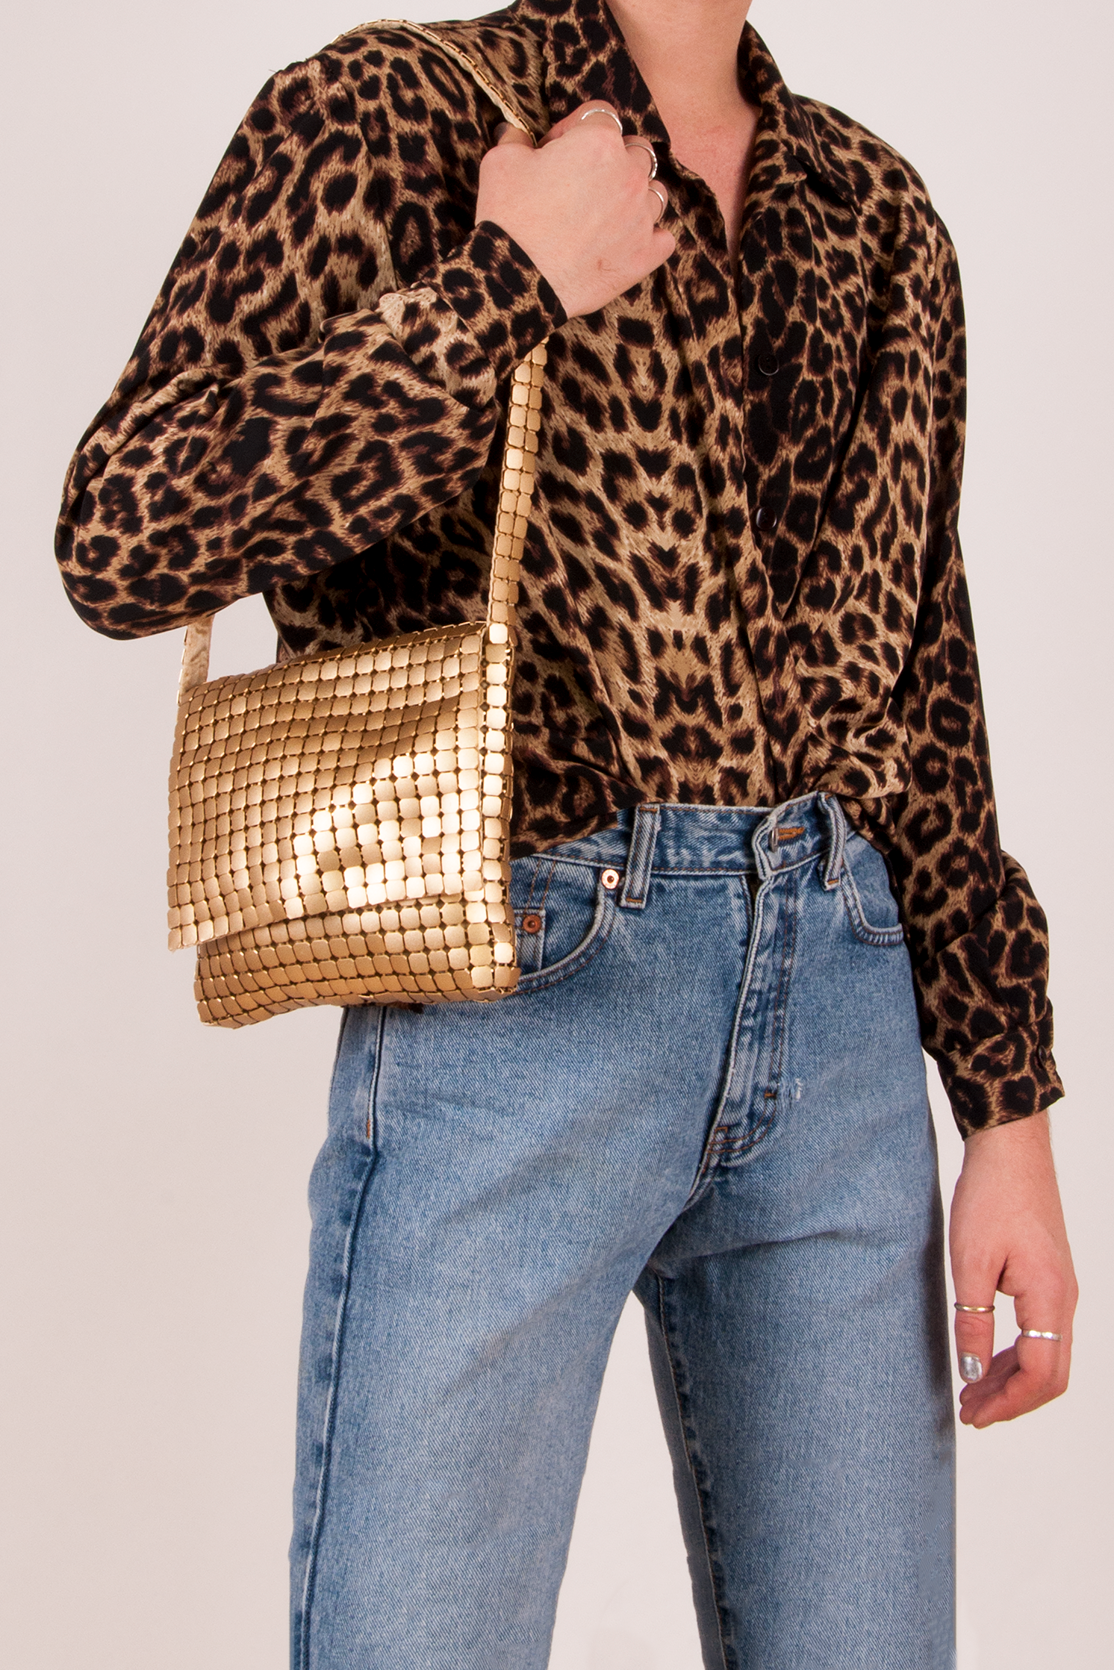 Gold Metal Shoulder Bag